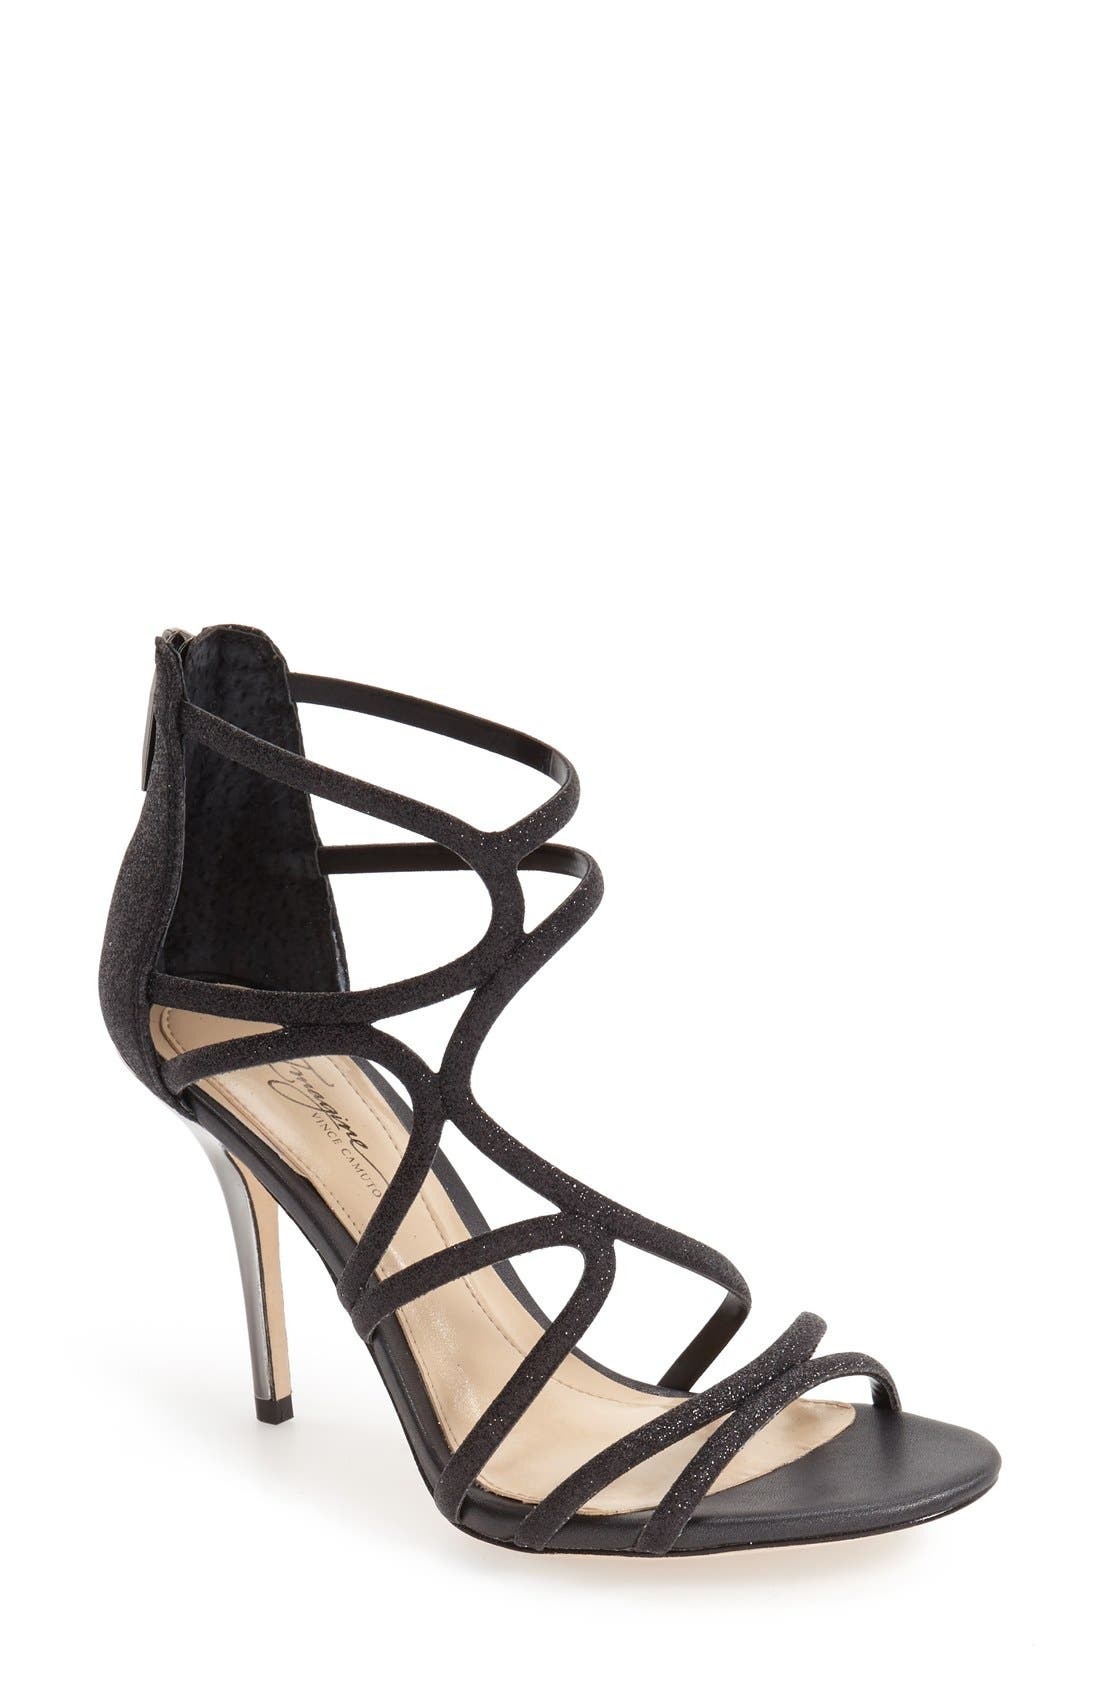 IMAGINE BY VINCE CAMUTO 'Ranee' Dress Sandal